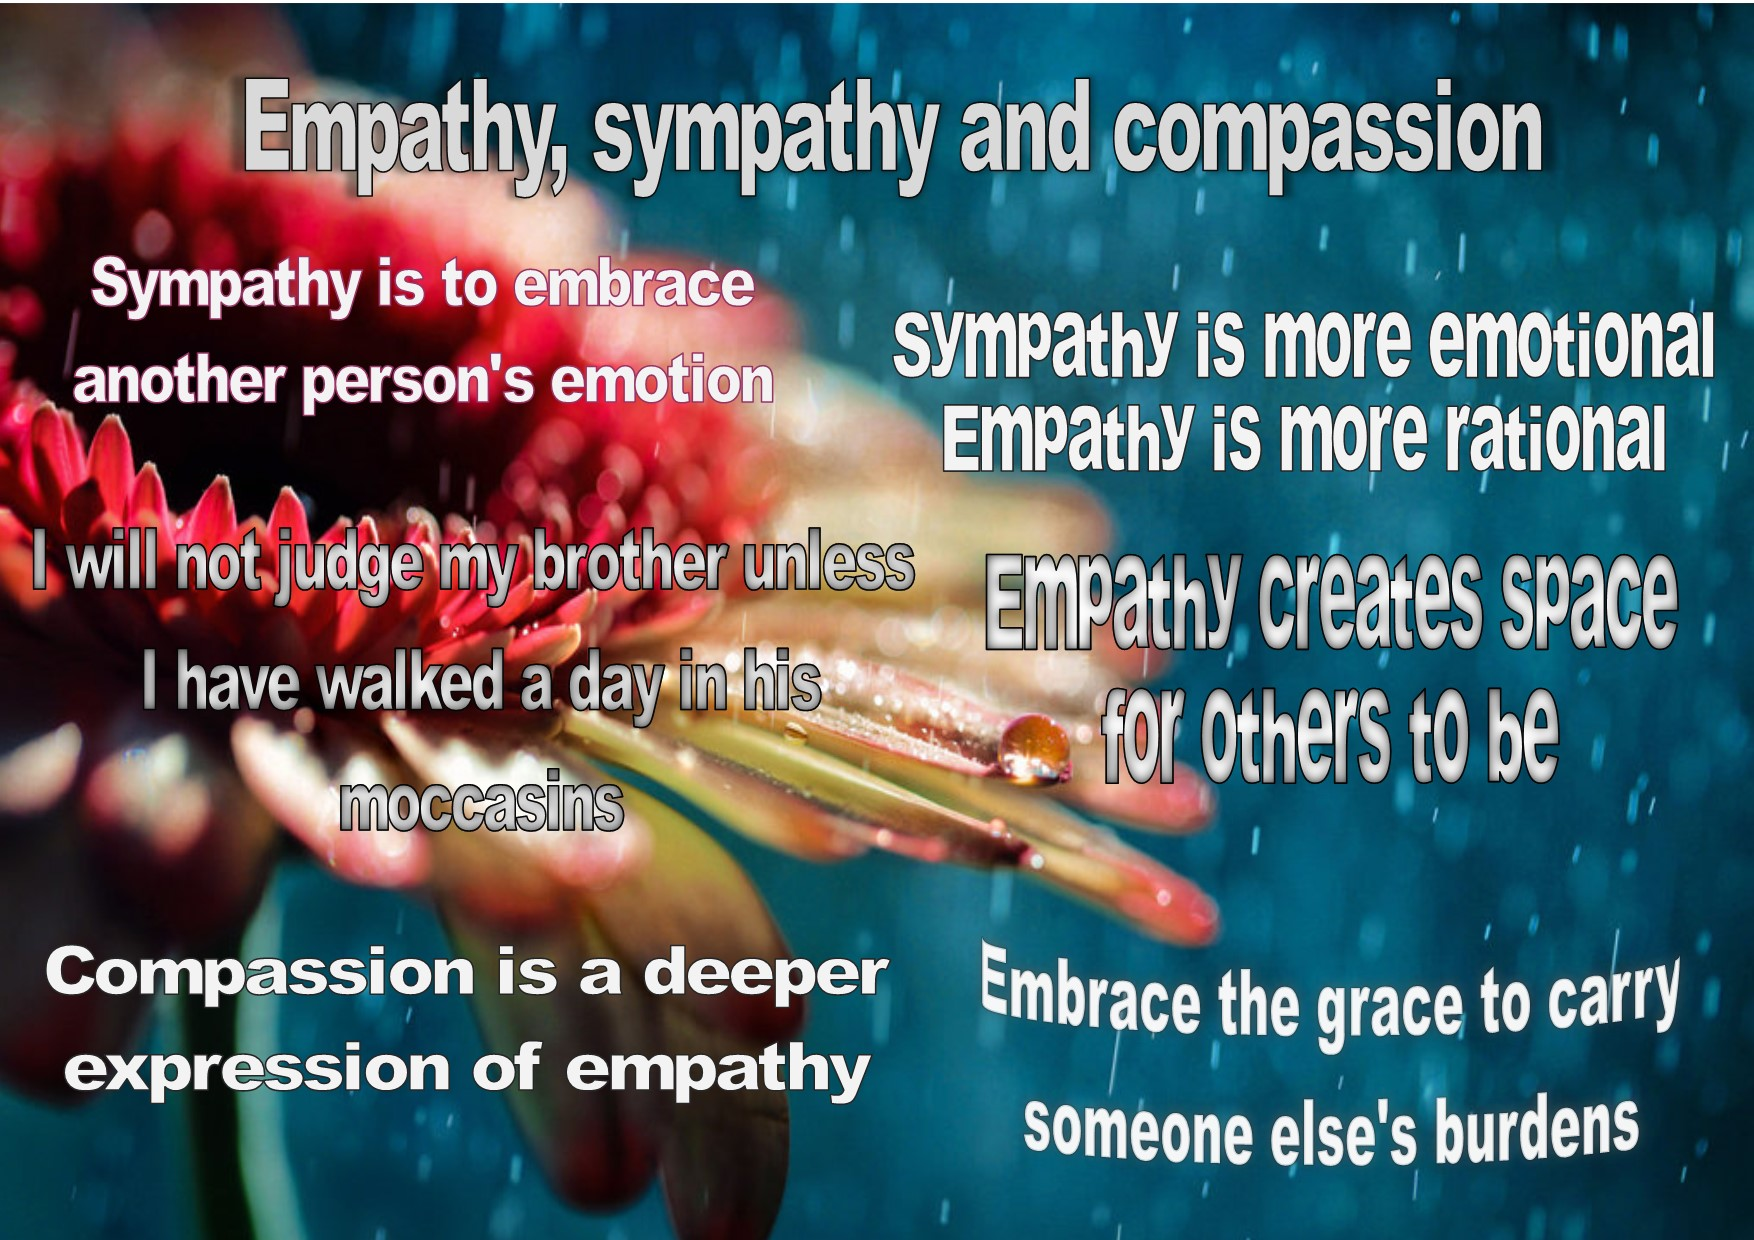 compassion and empathy Against empathy: the case for rational compassion and millions of other books are available for instant access kindle | audible enter your mobile number or email address below and we'll send you a link to download the free kindle app.